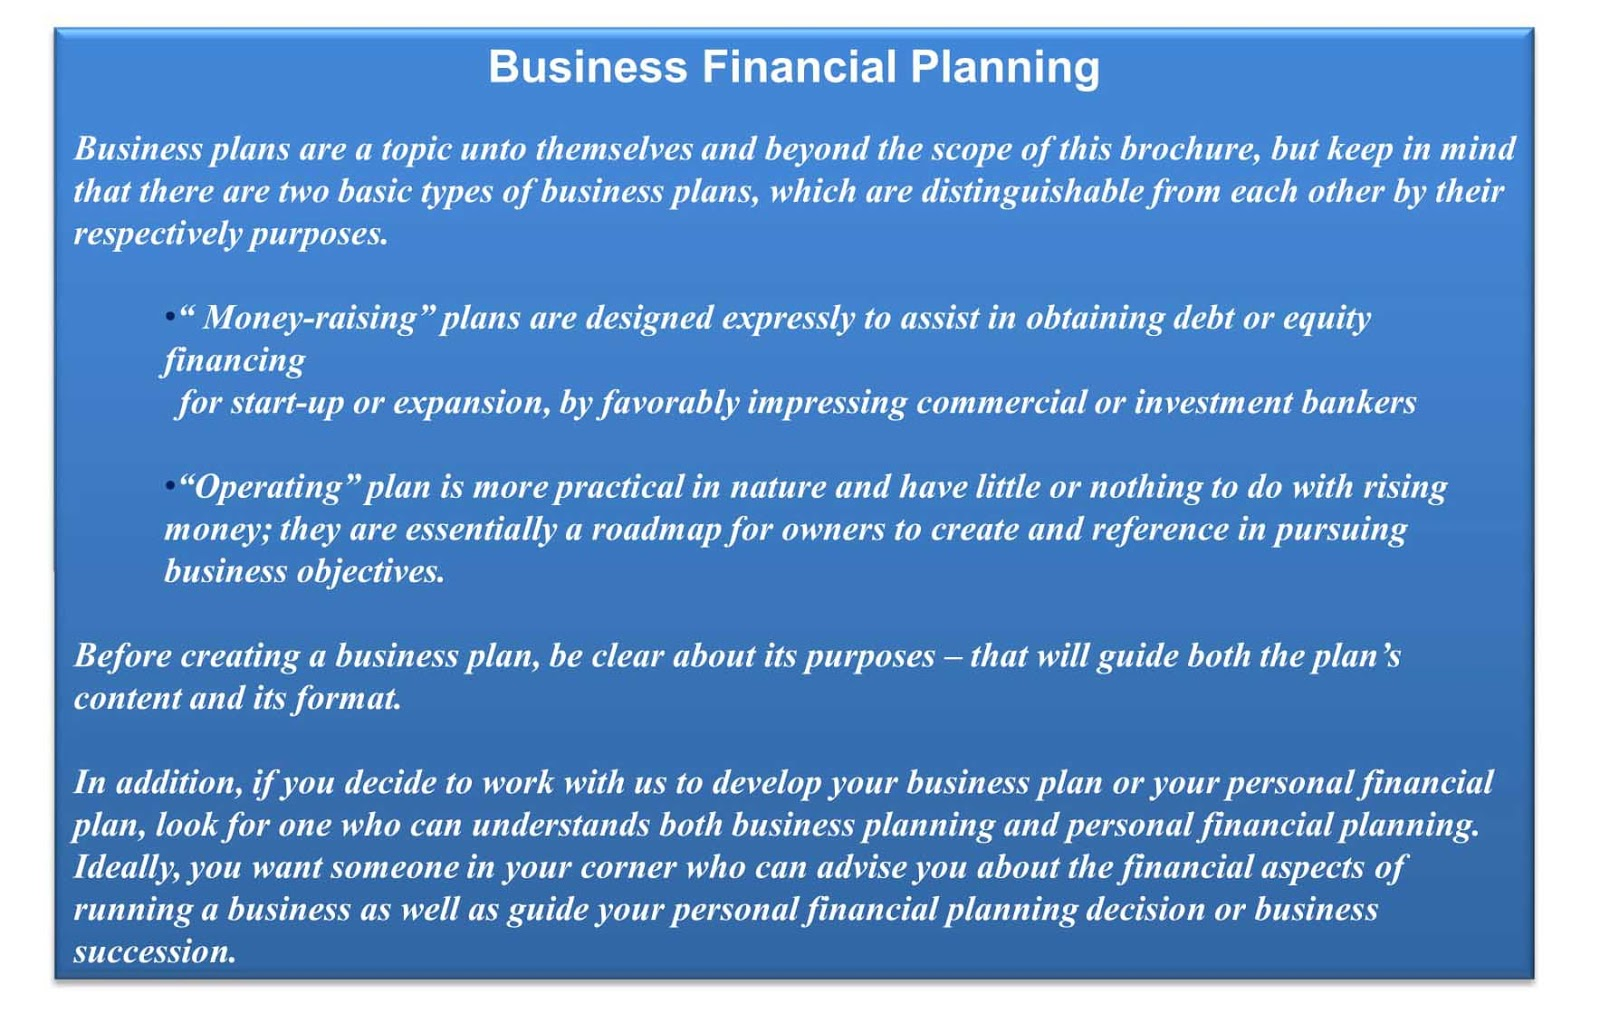 Financial Risk Management Consultancy: Business Financial